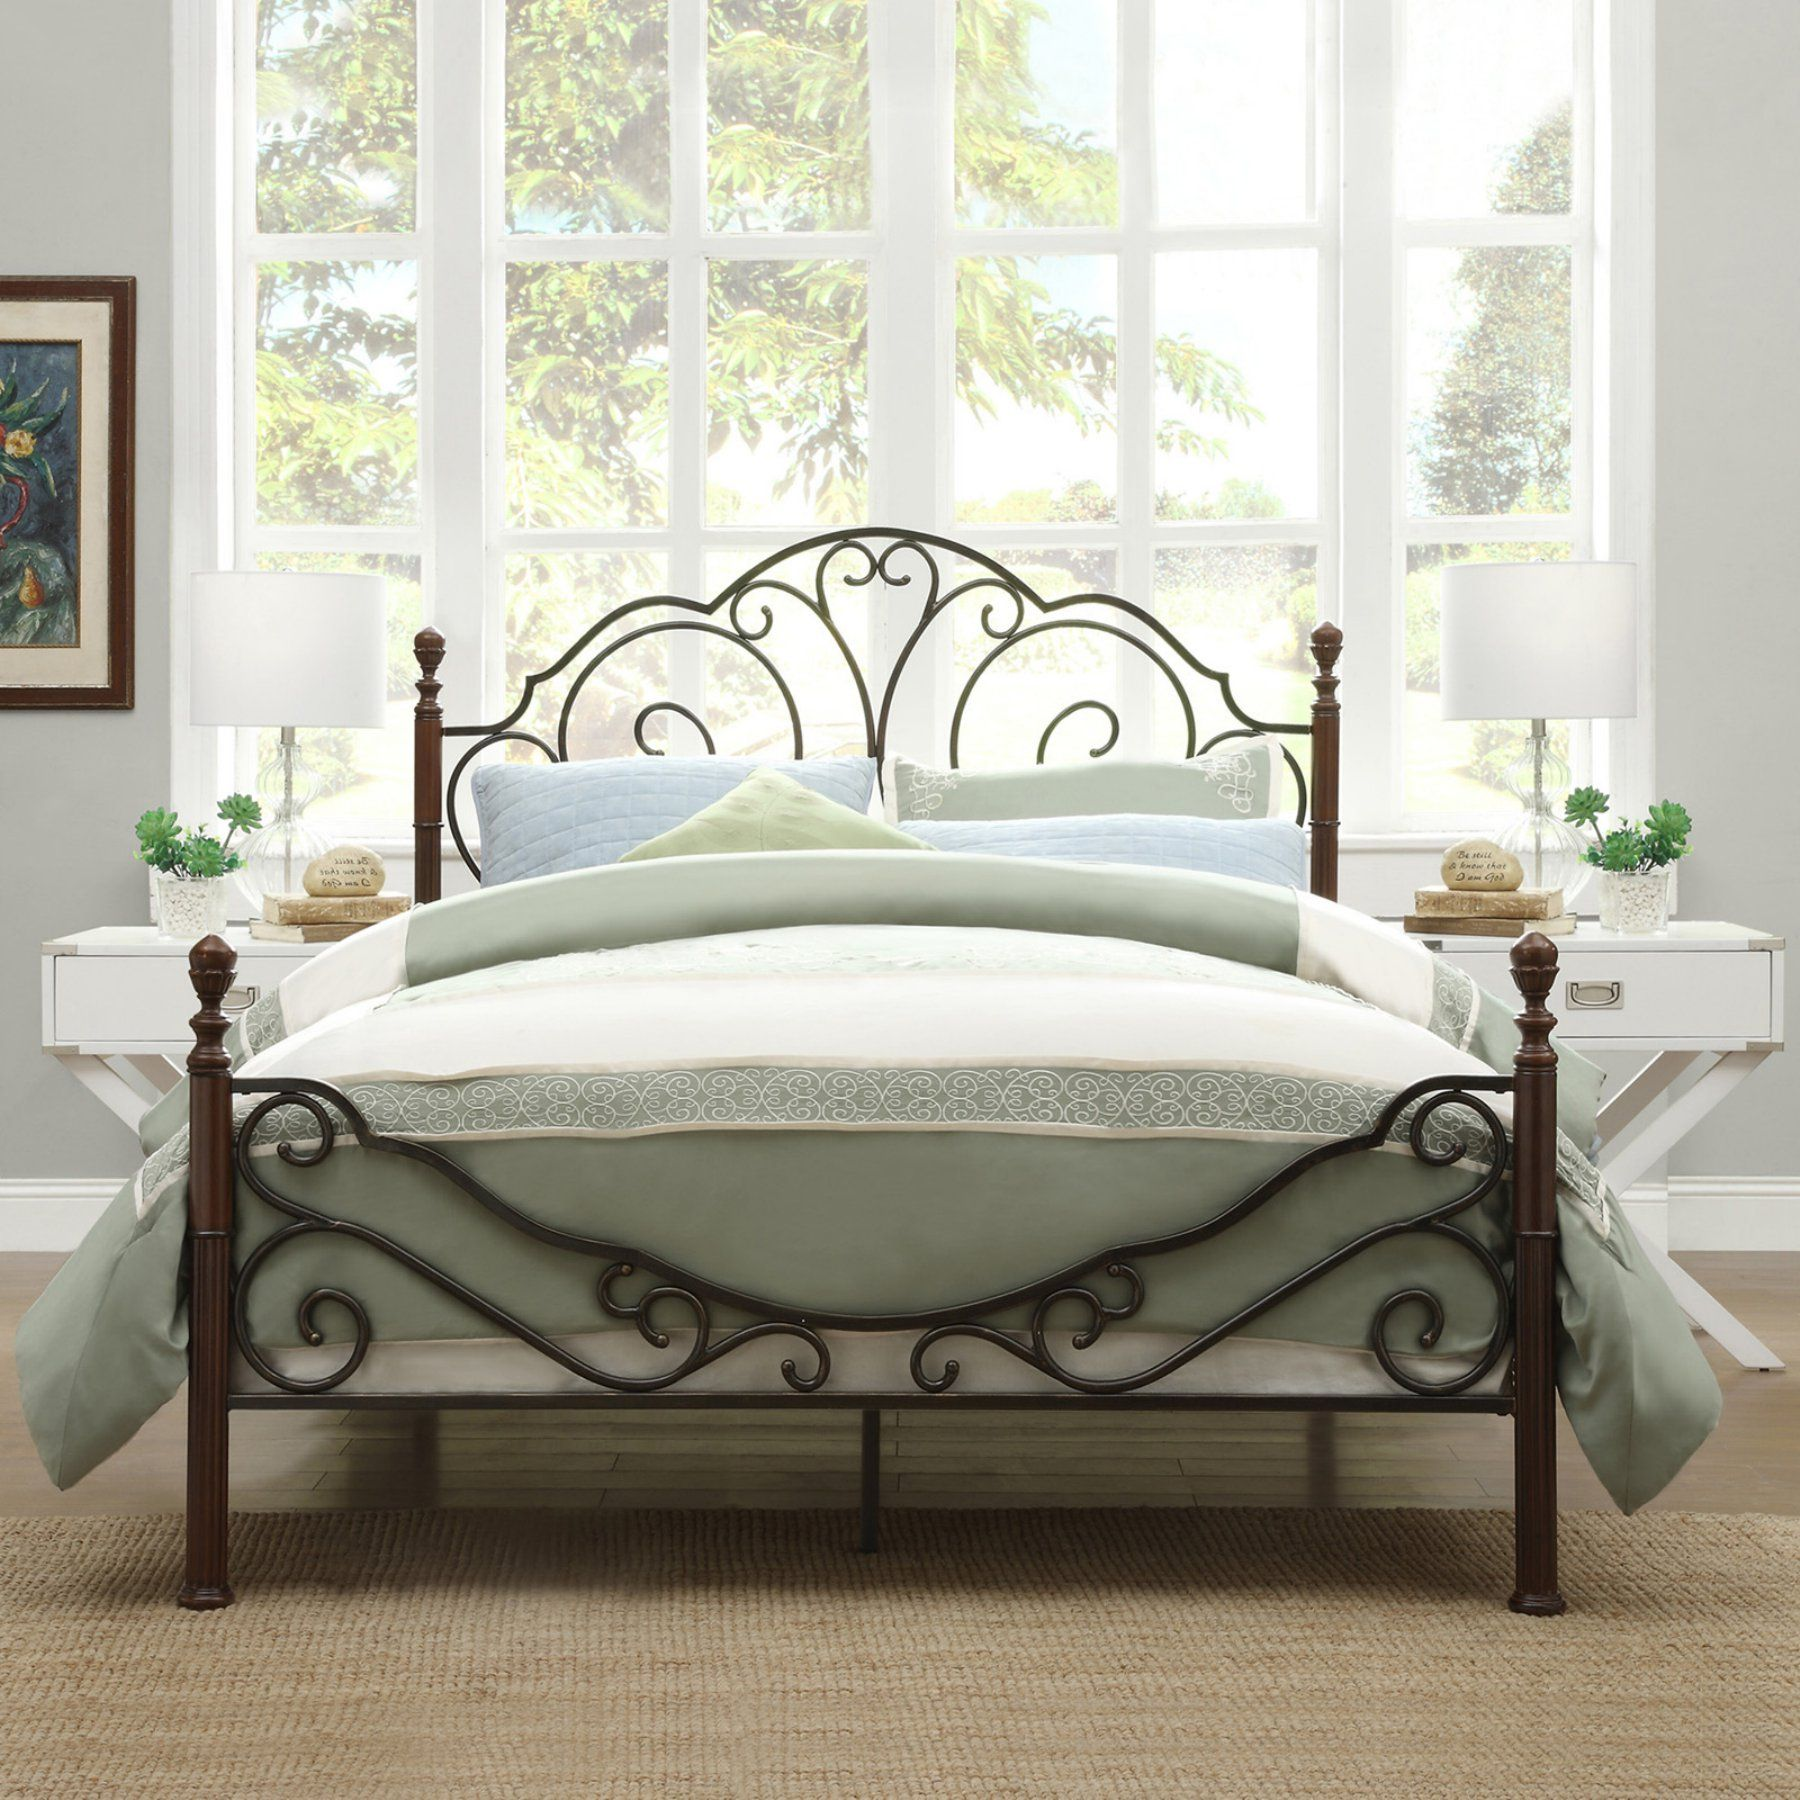 Weston Home Adison Graceful Scrolls Panel Metal Bed  684513F 1[Bd]